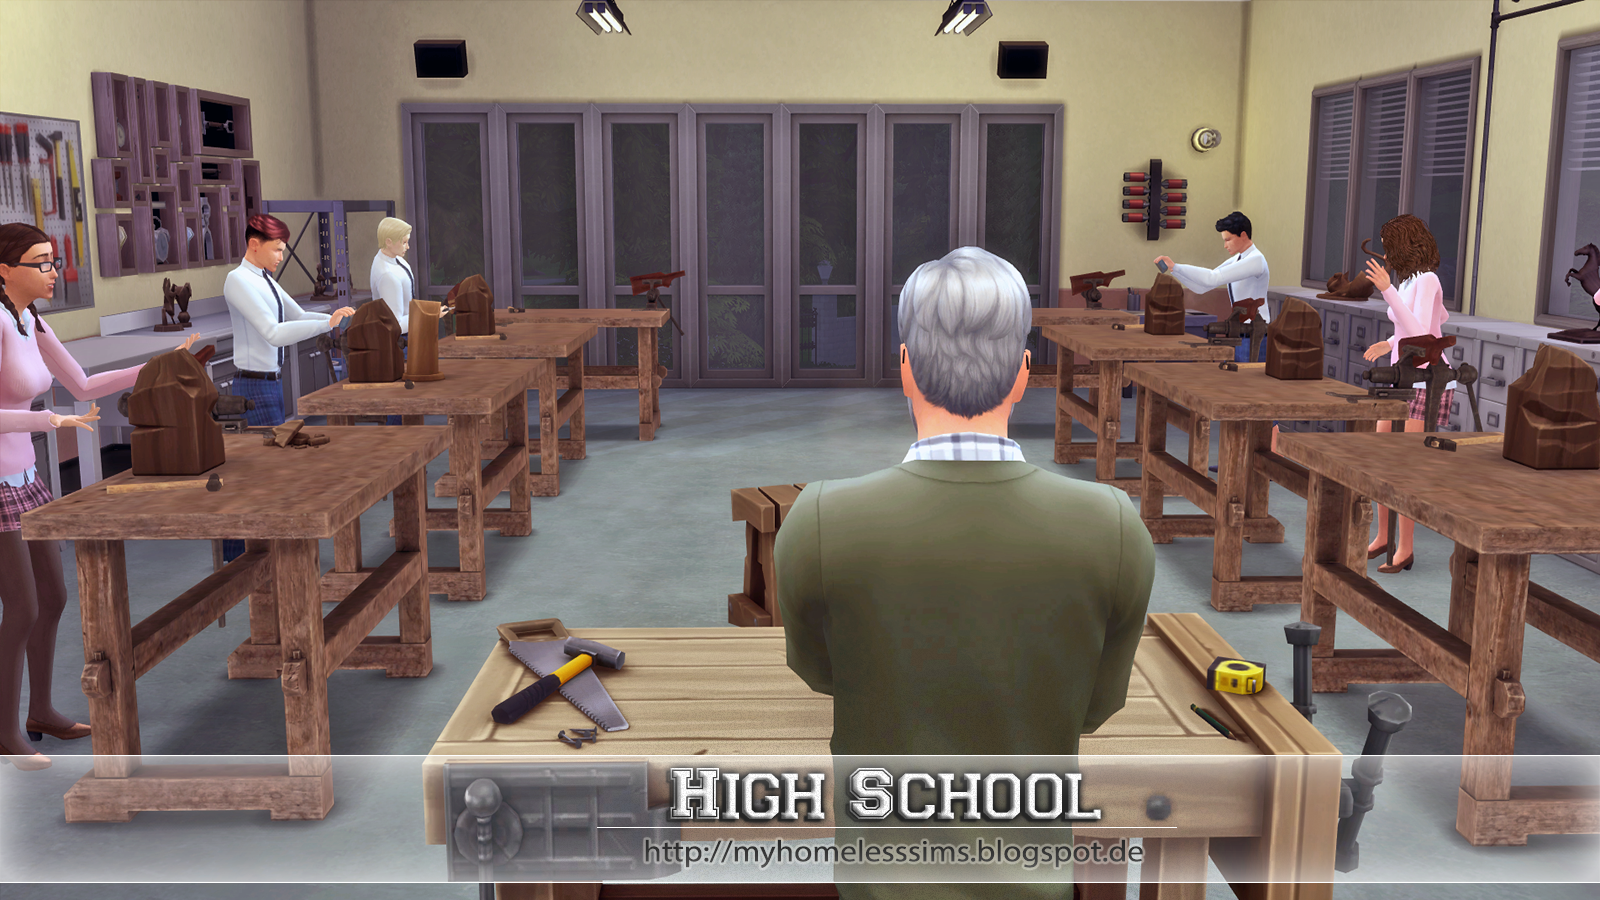 High School by My Homeless Sims